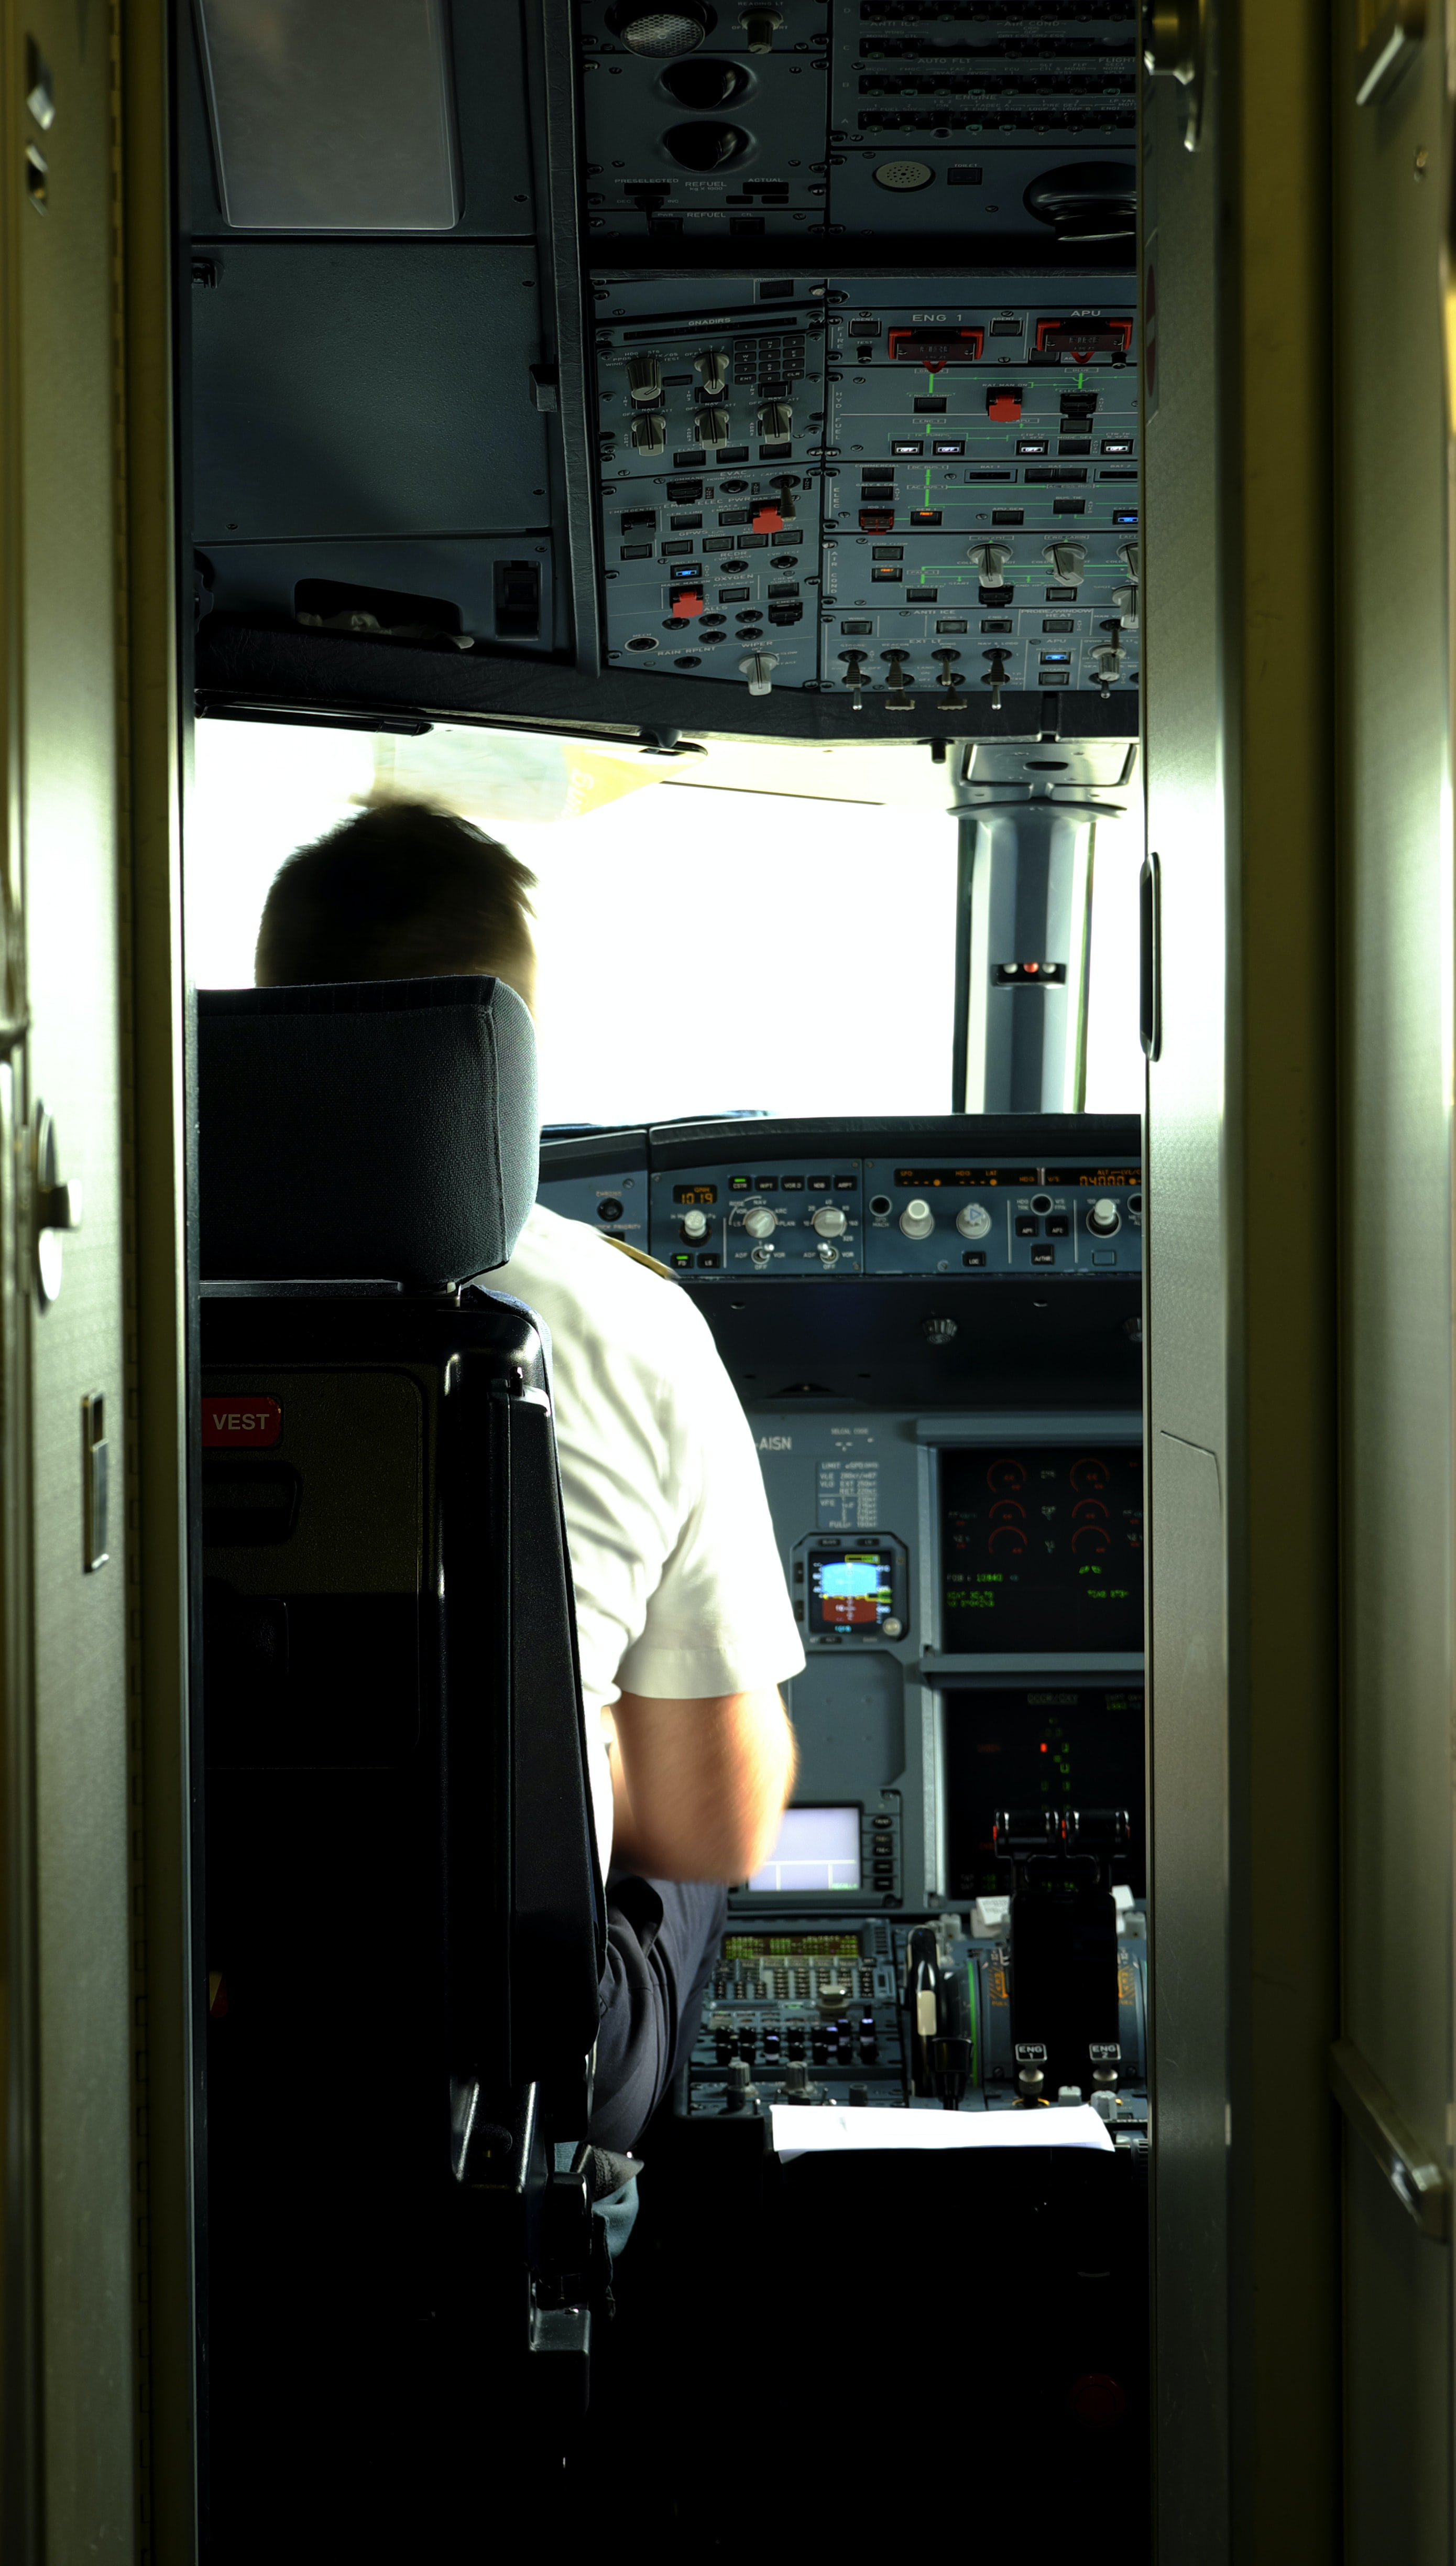 man sitting in front of control panel